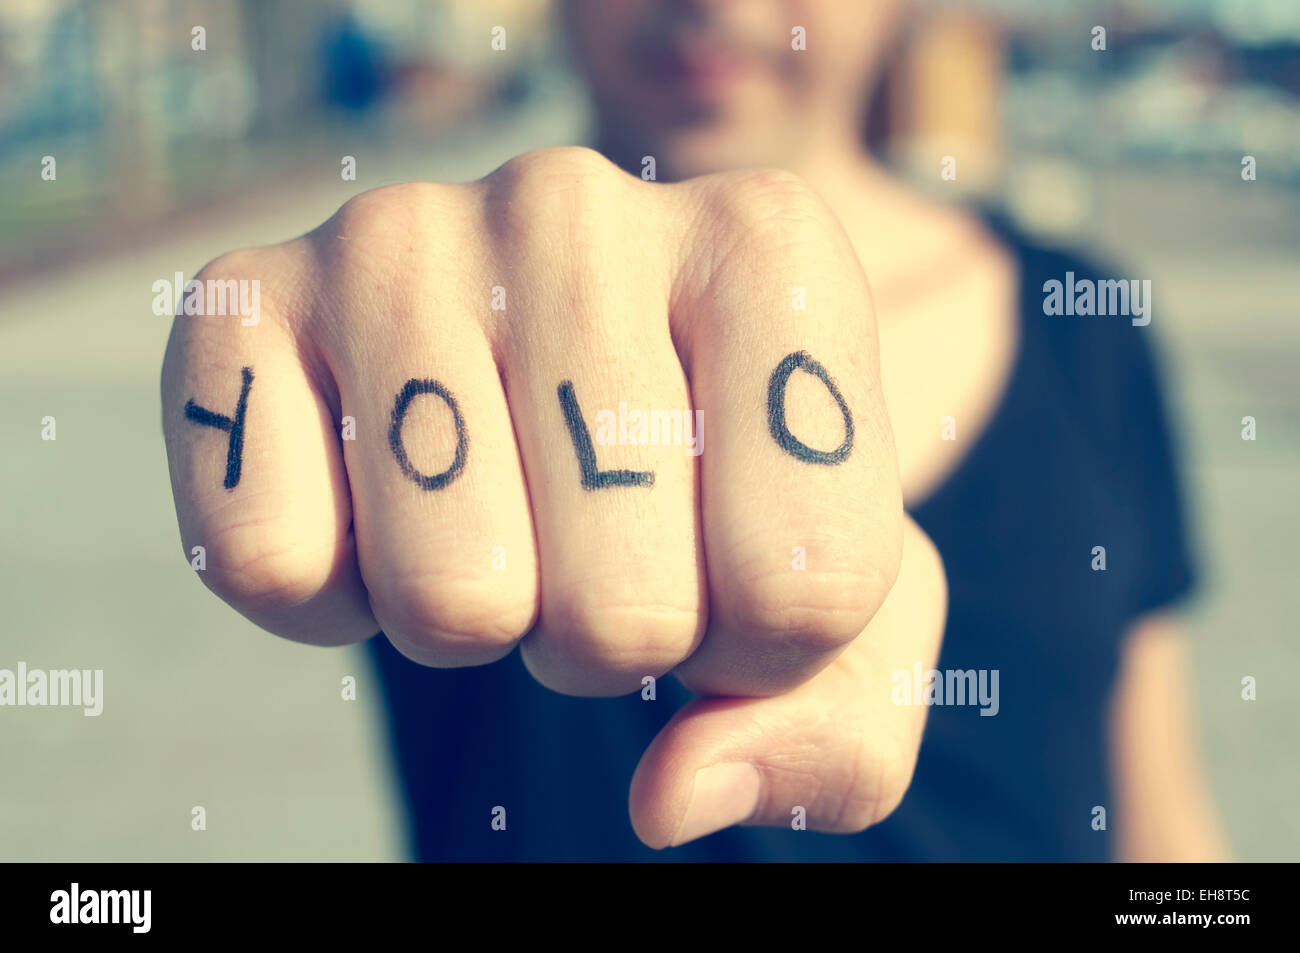 closeup of a young man with the word yolo, for you only live once, tattooed in his hand, with a filter effect - Stock Image